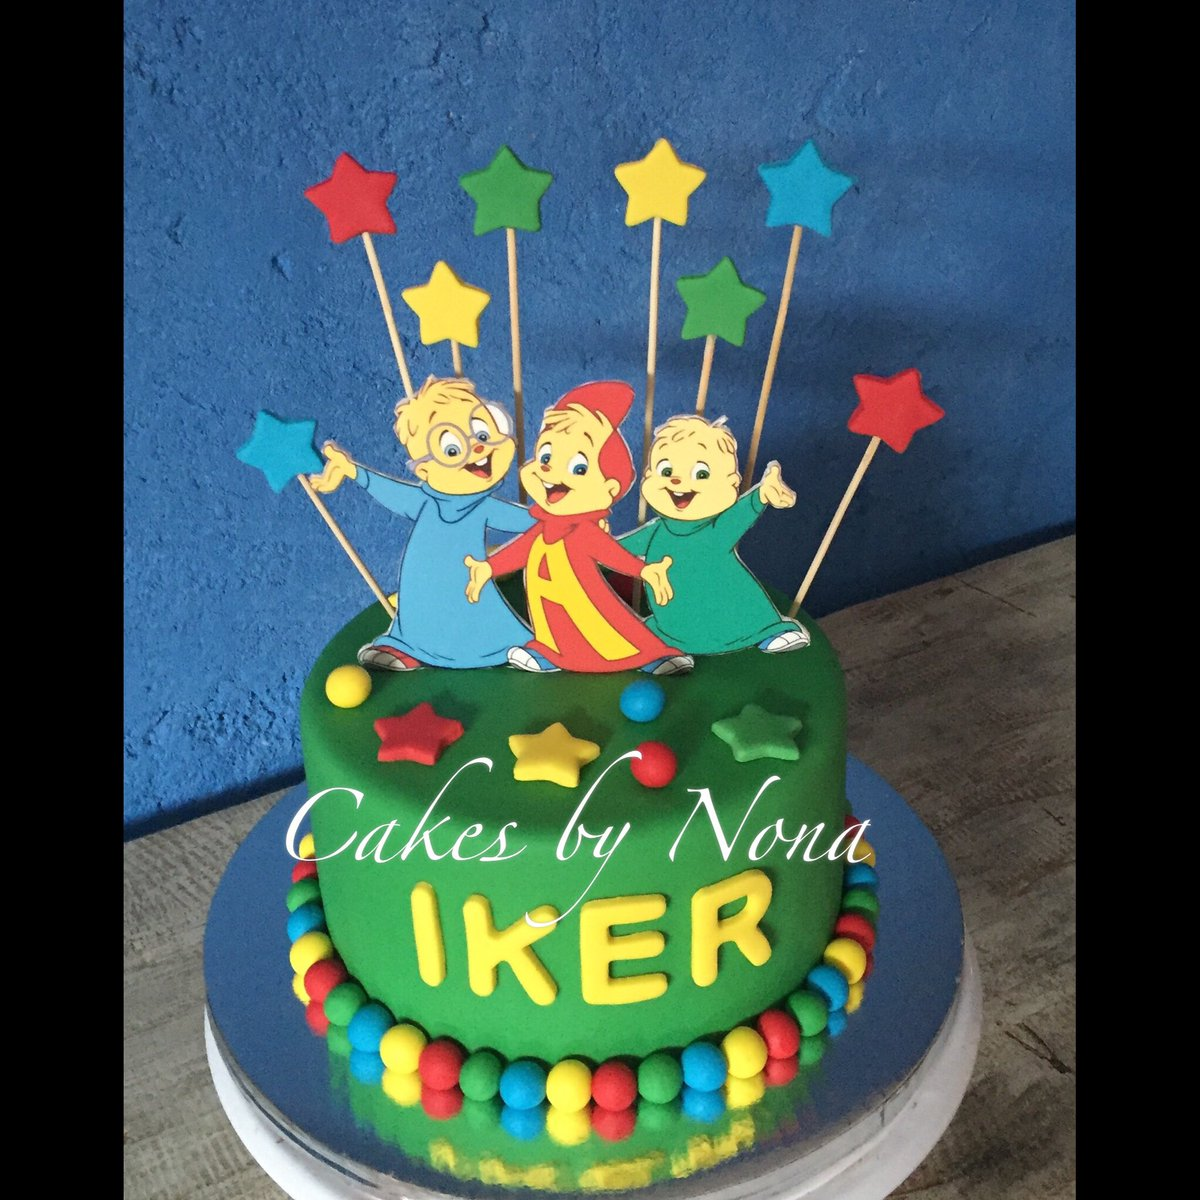 Tremendous Cakesbynona On Twitter Alvin And The Chipmunks Bday Cake Alvin Funny Birthday Cards Online Sheoxdamsfinfo